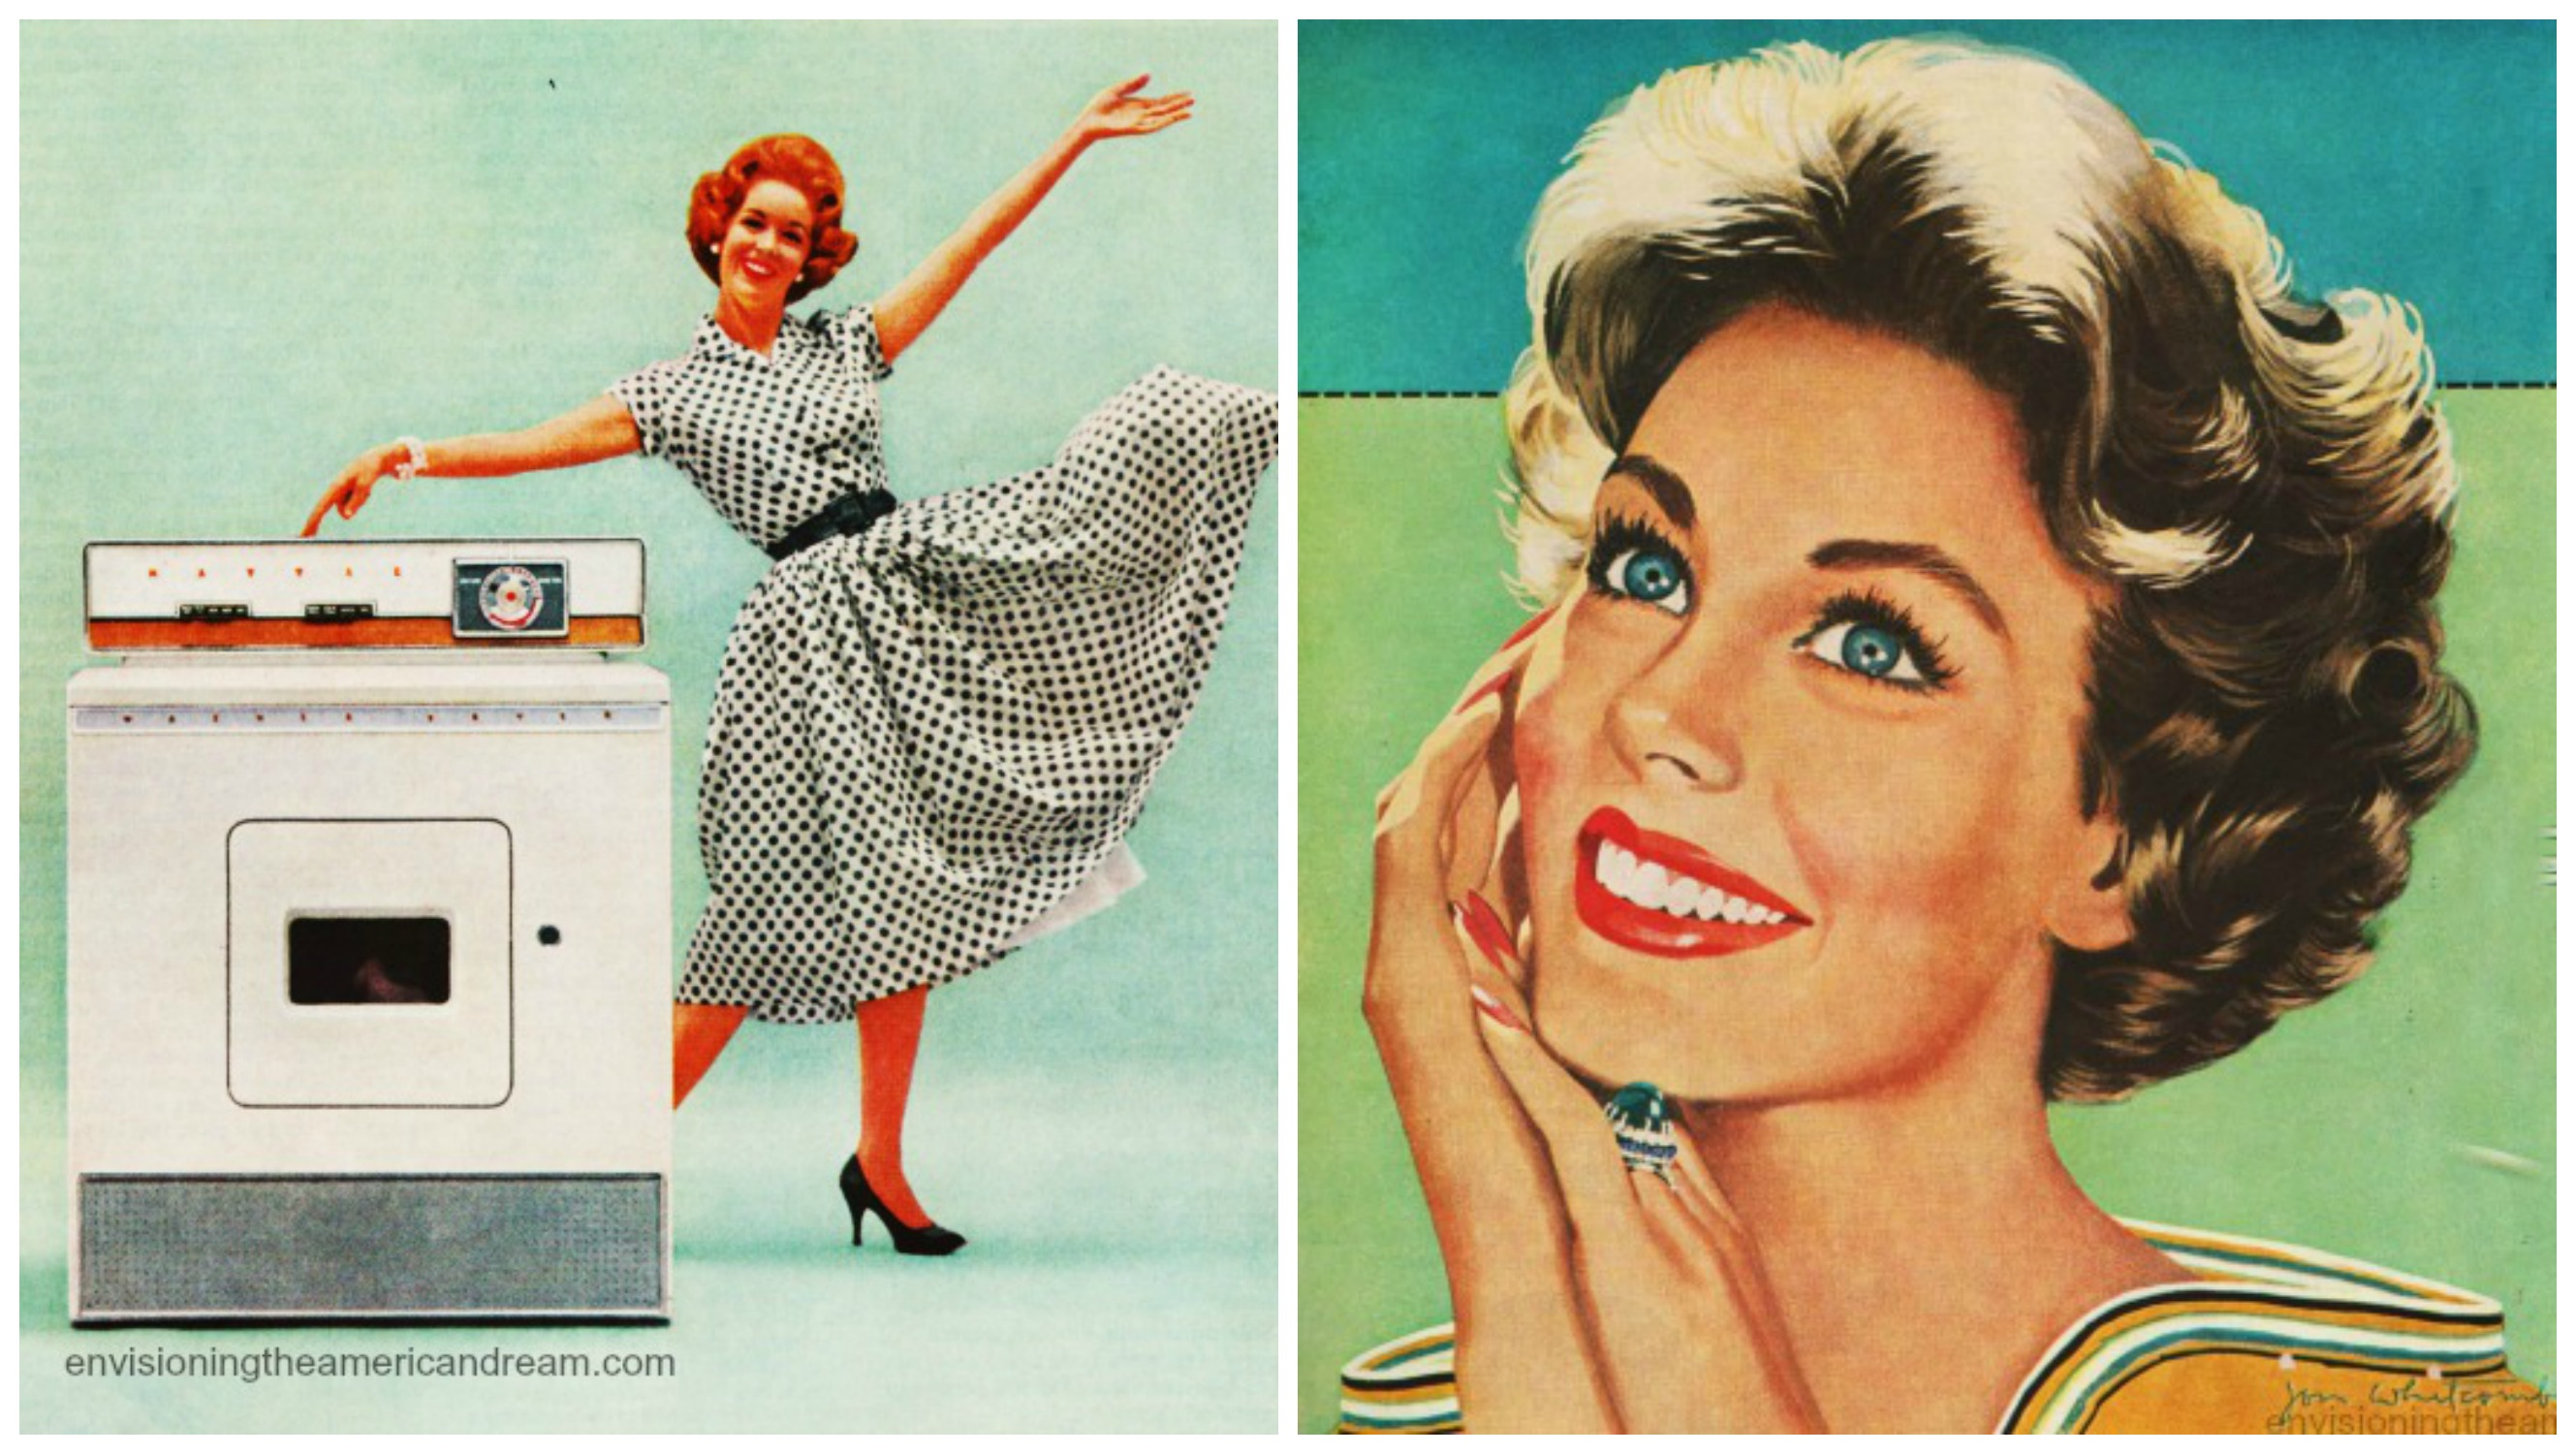 Housewife Happy Envisioning The American Dream